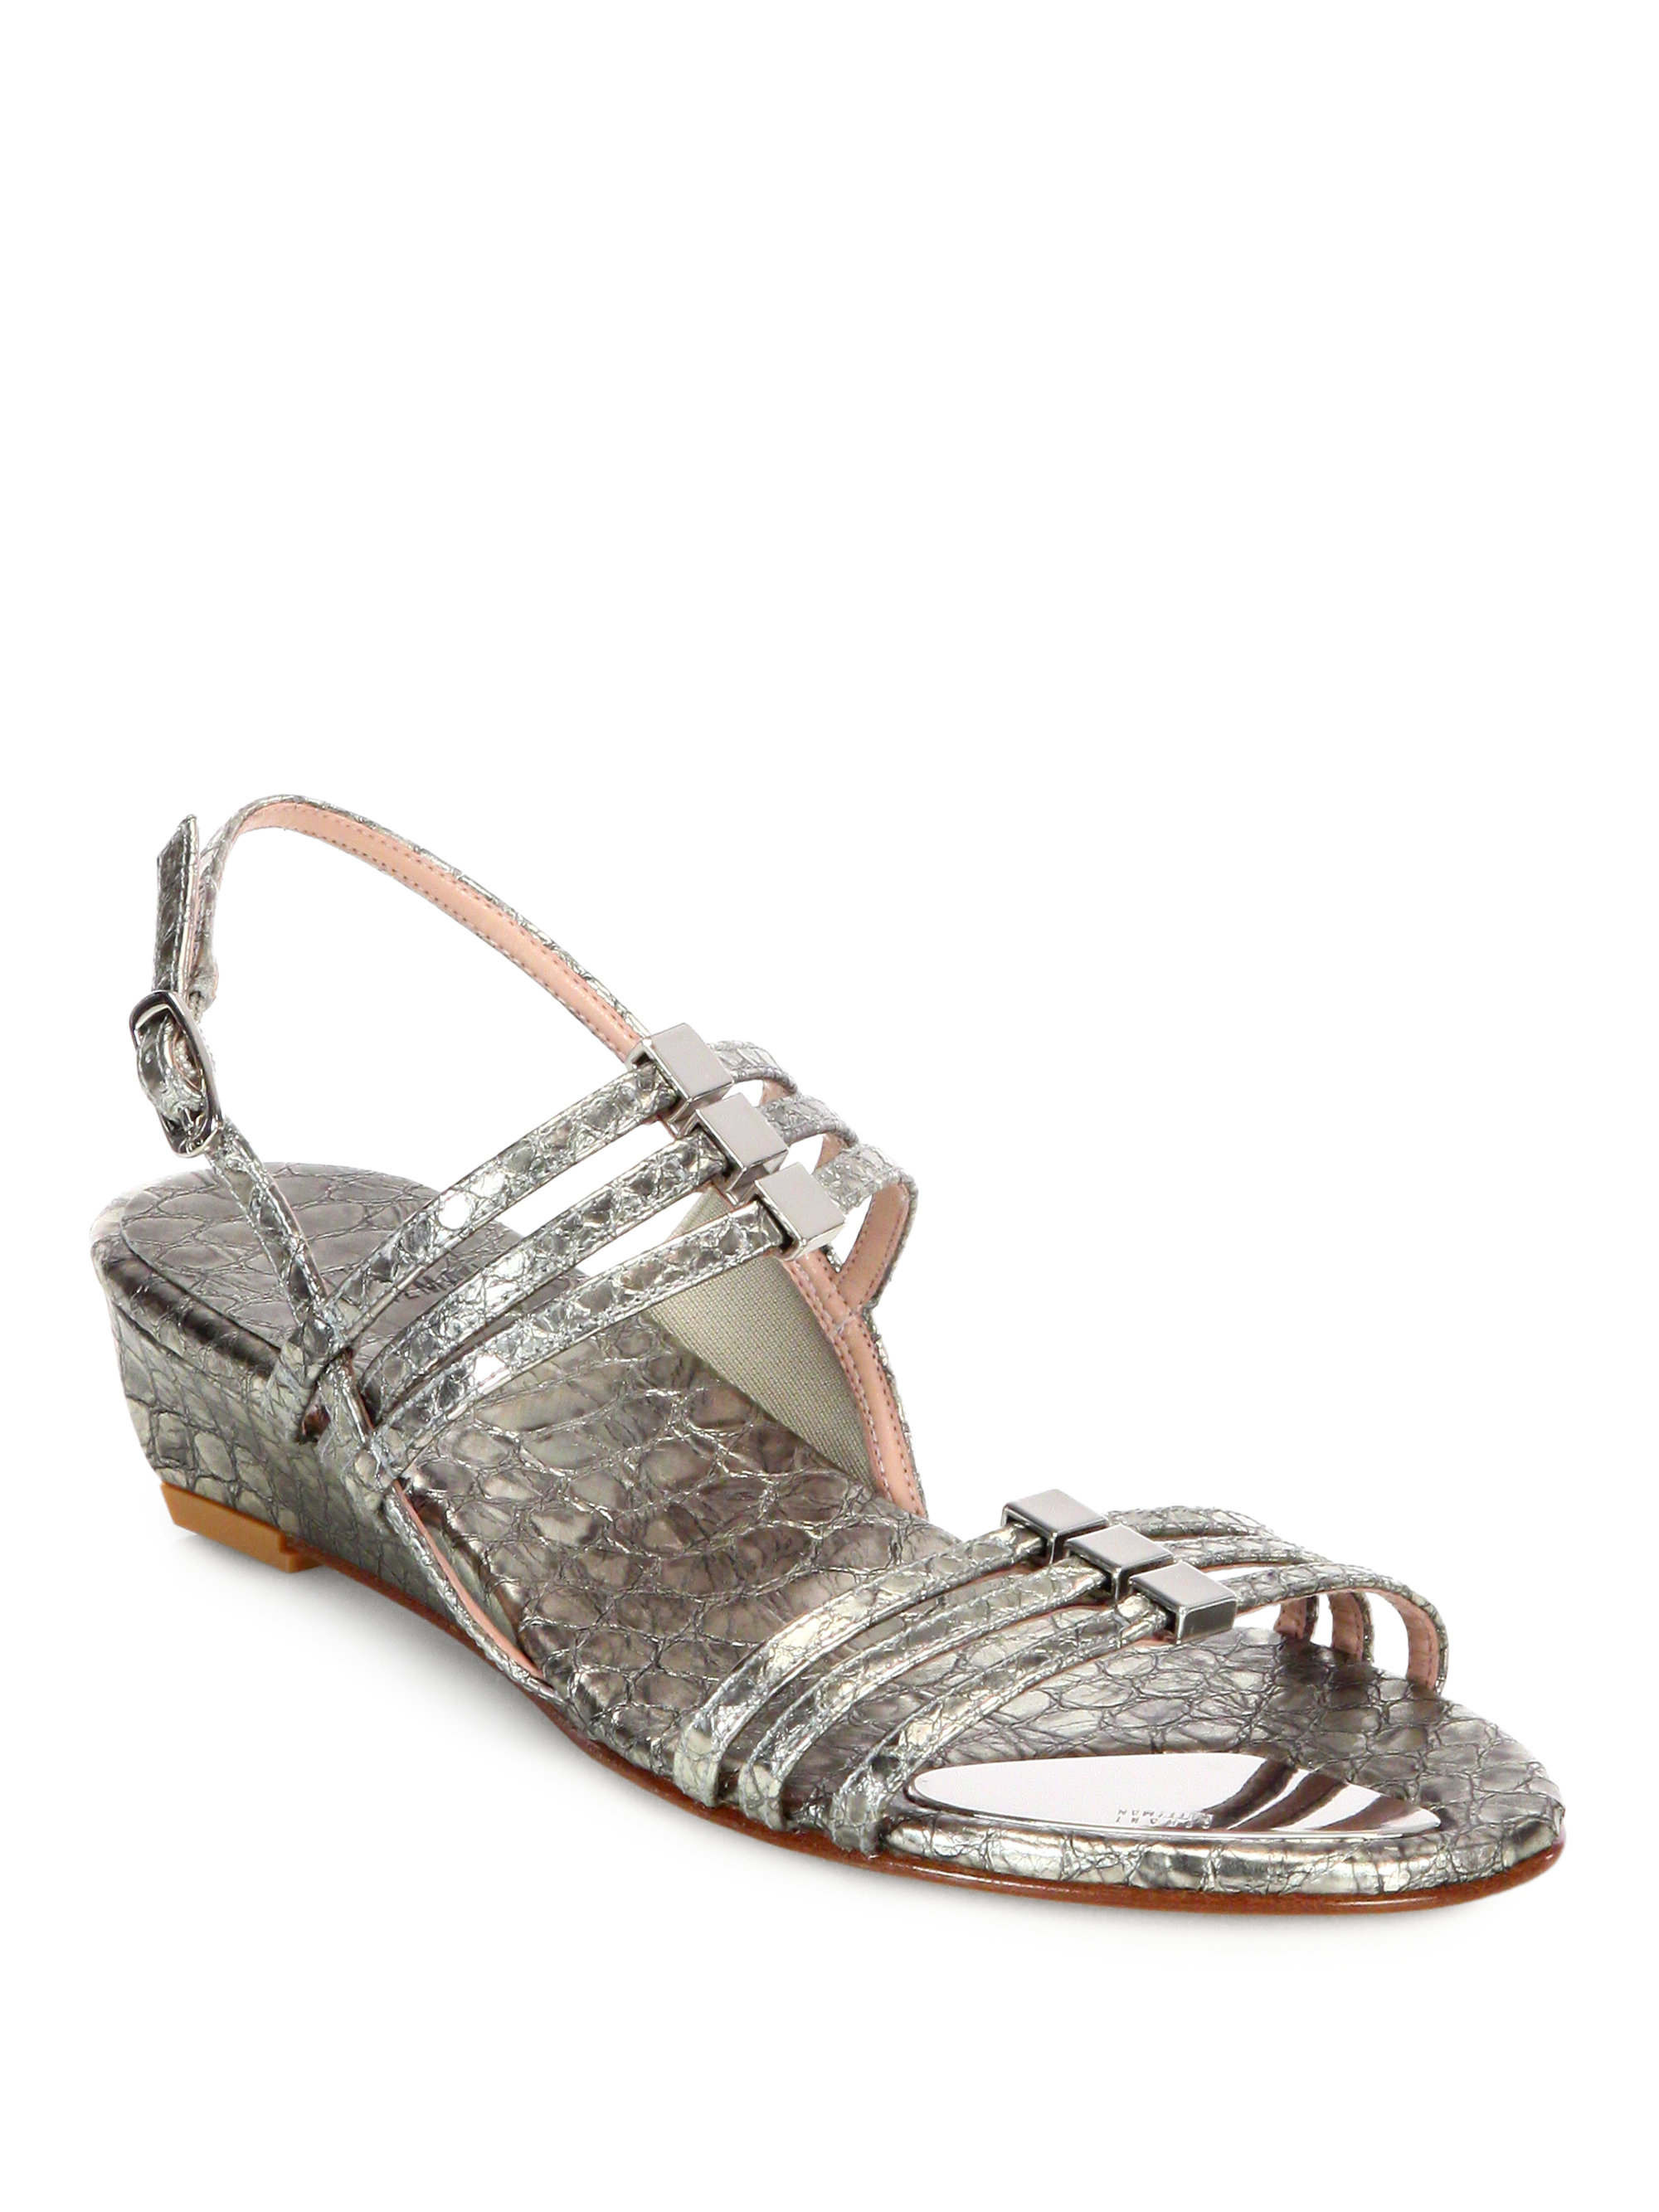 Stuart Weitzman Playful Snake Embossed Metallic Leather